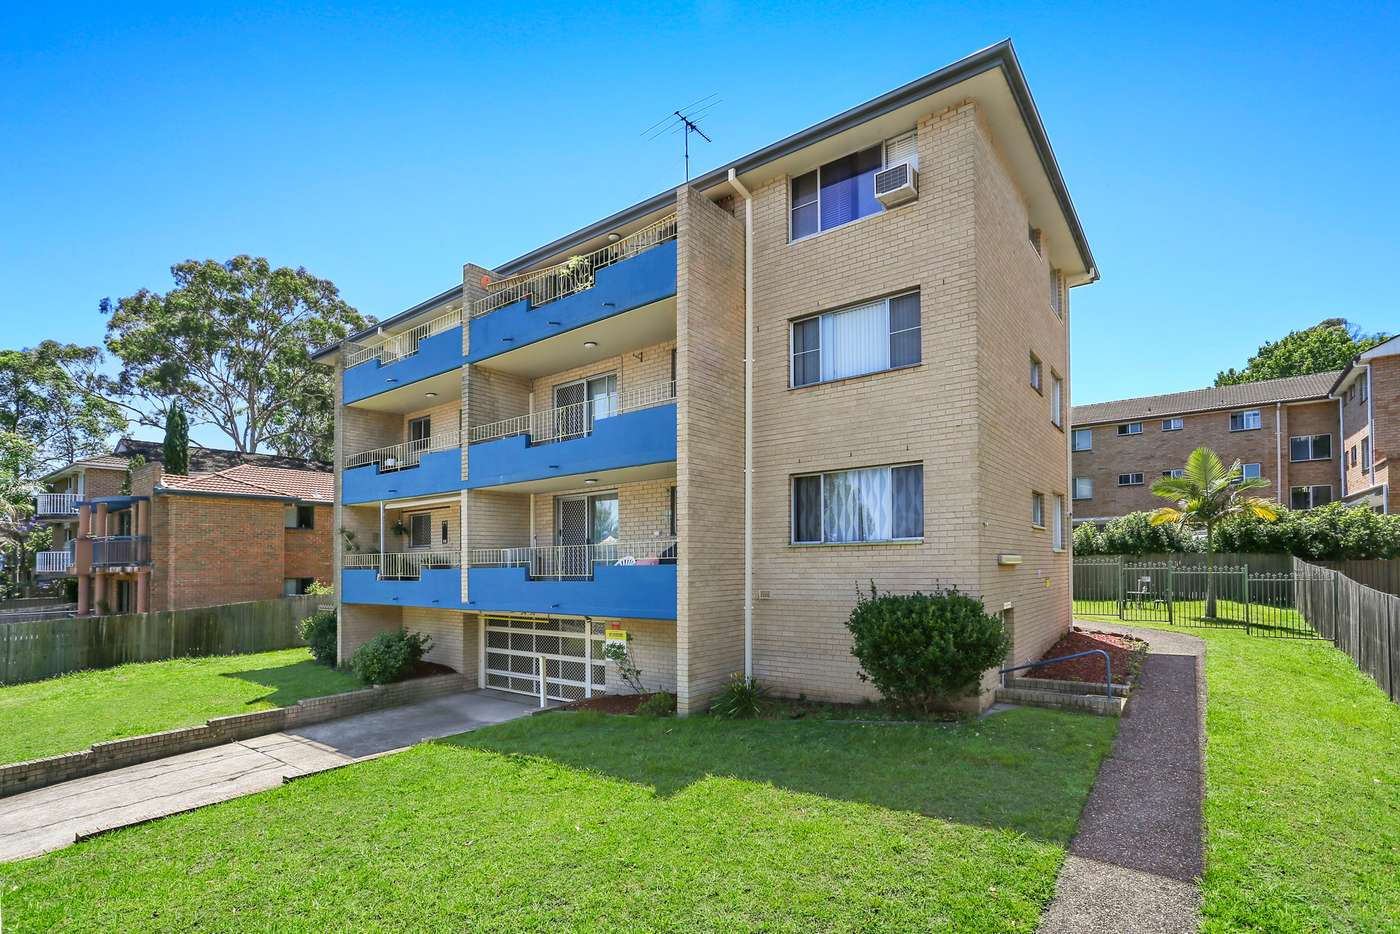 Main view of Homely apartment listing, 2/94 O'Connell Street, North Parramatta NSW 2151